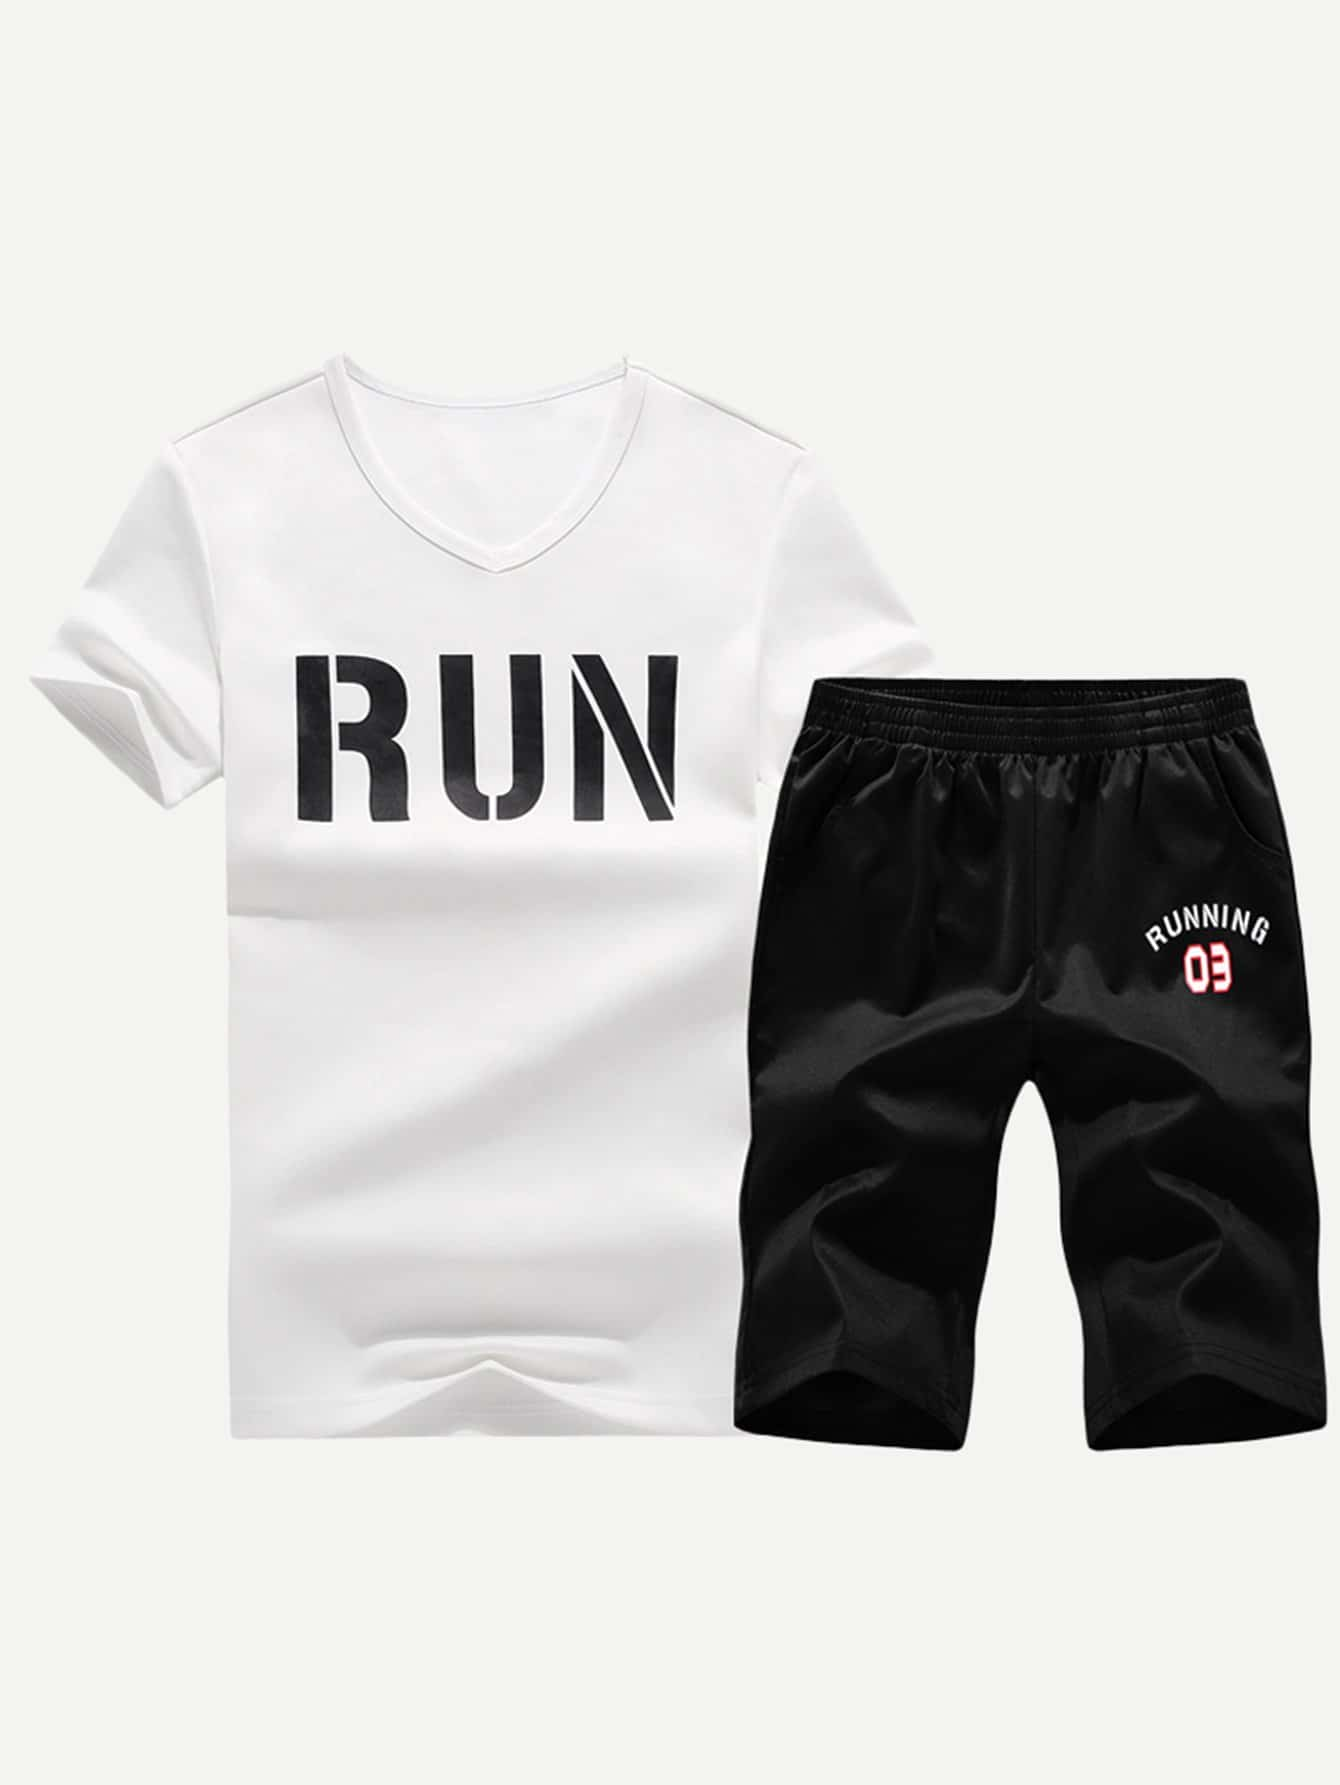 Men Letter Print Tee With Shorts letter print hooded tee with shorts